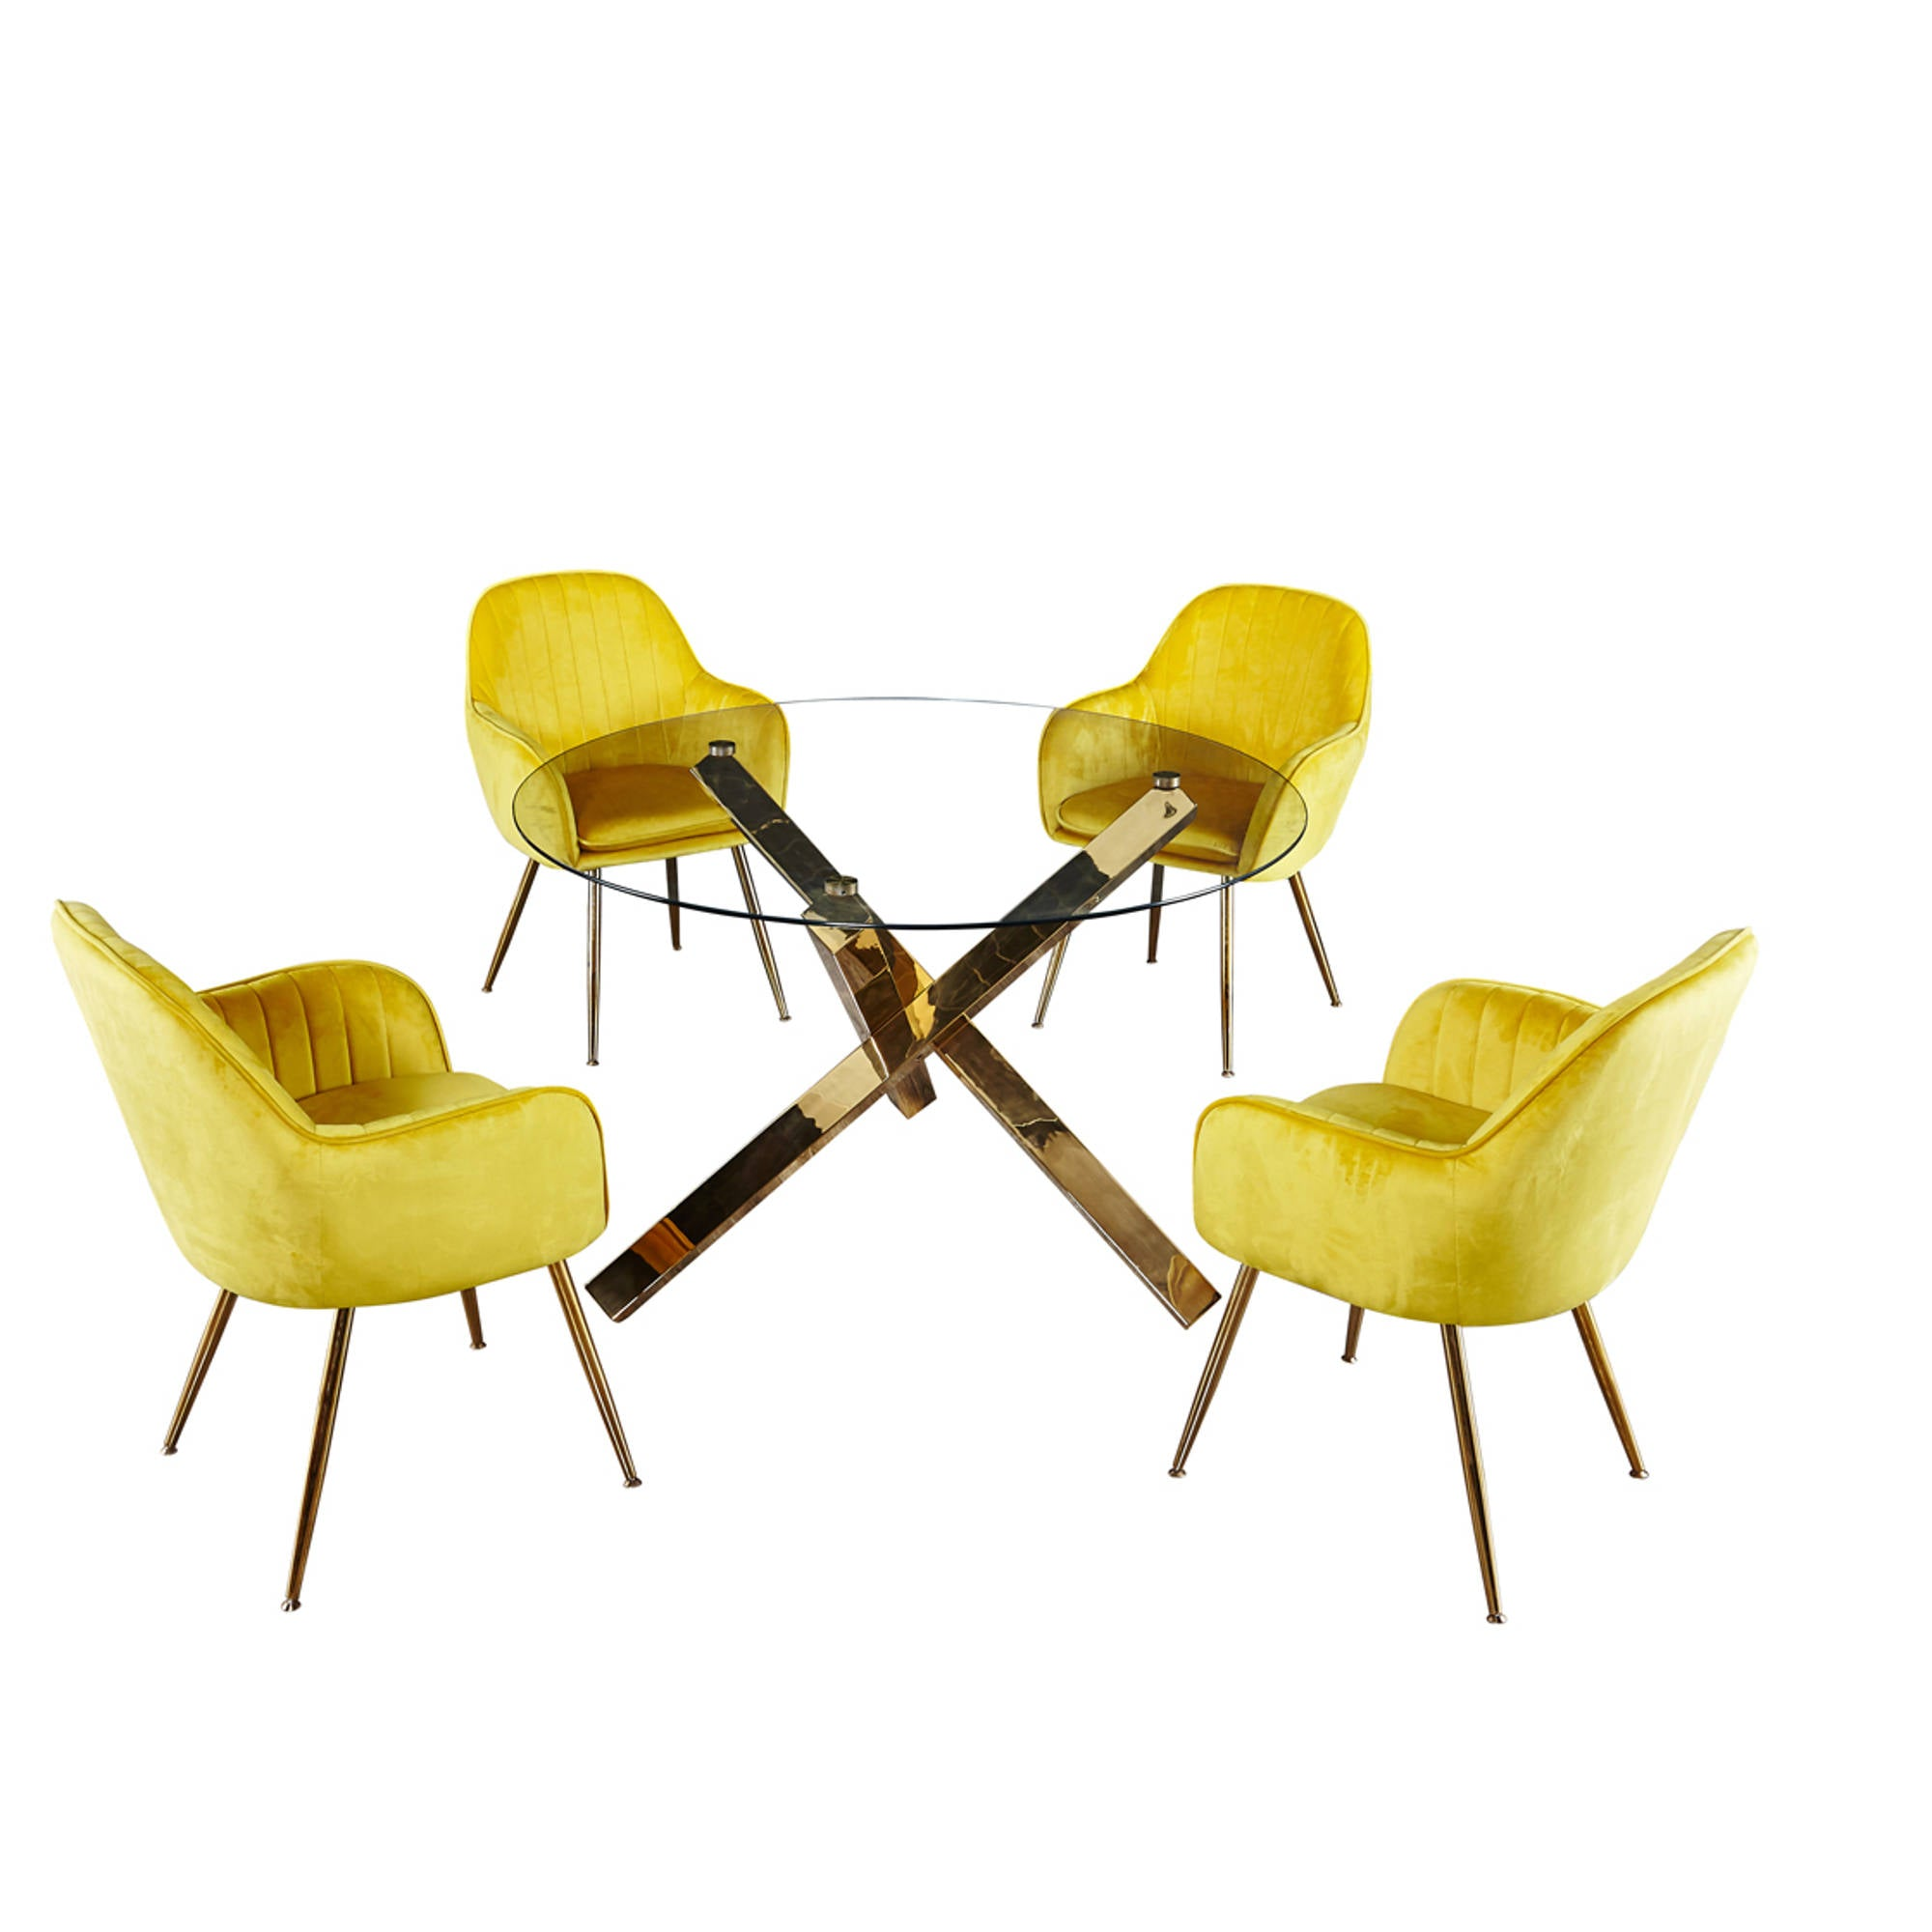 Tragara Table with Gold Legs - Ezzo